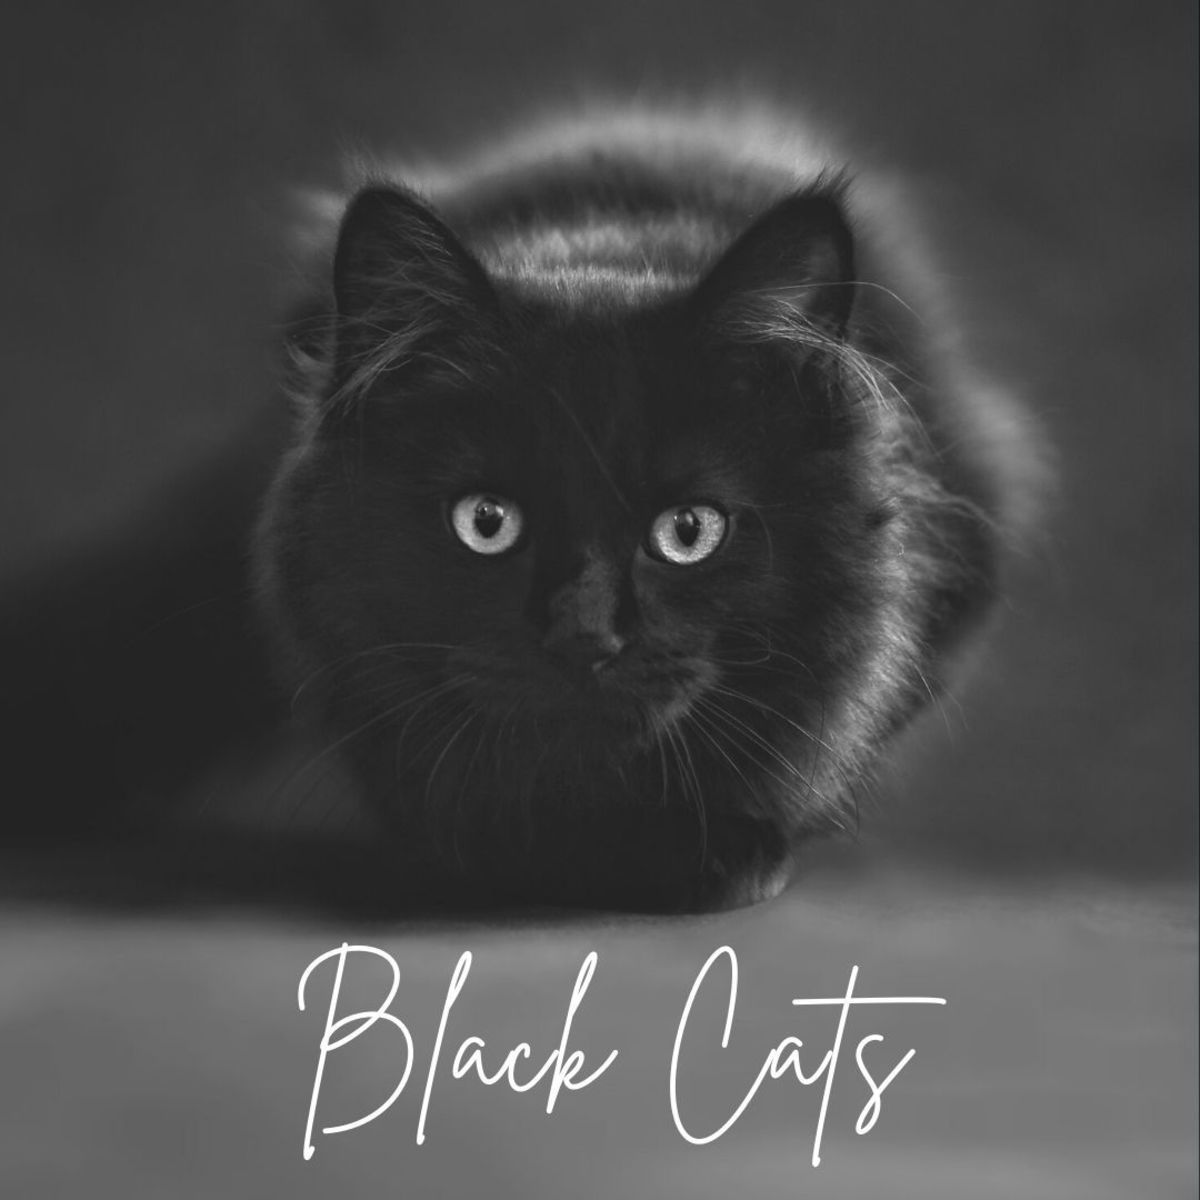 Black cats, throughout the ages, have symbolized the darker nature of humanity. Often seen as a companion of witches and practitioners of the occult, they were vilified and subjected to mass extermination.